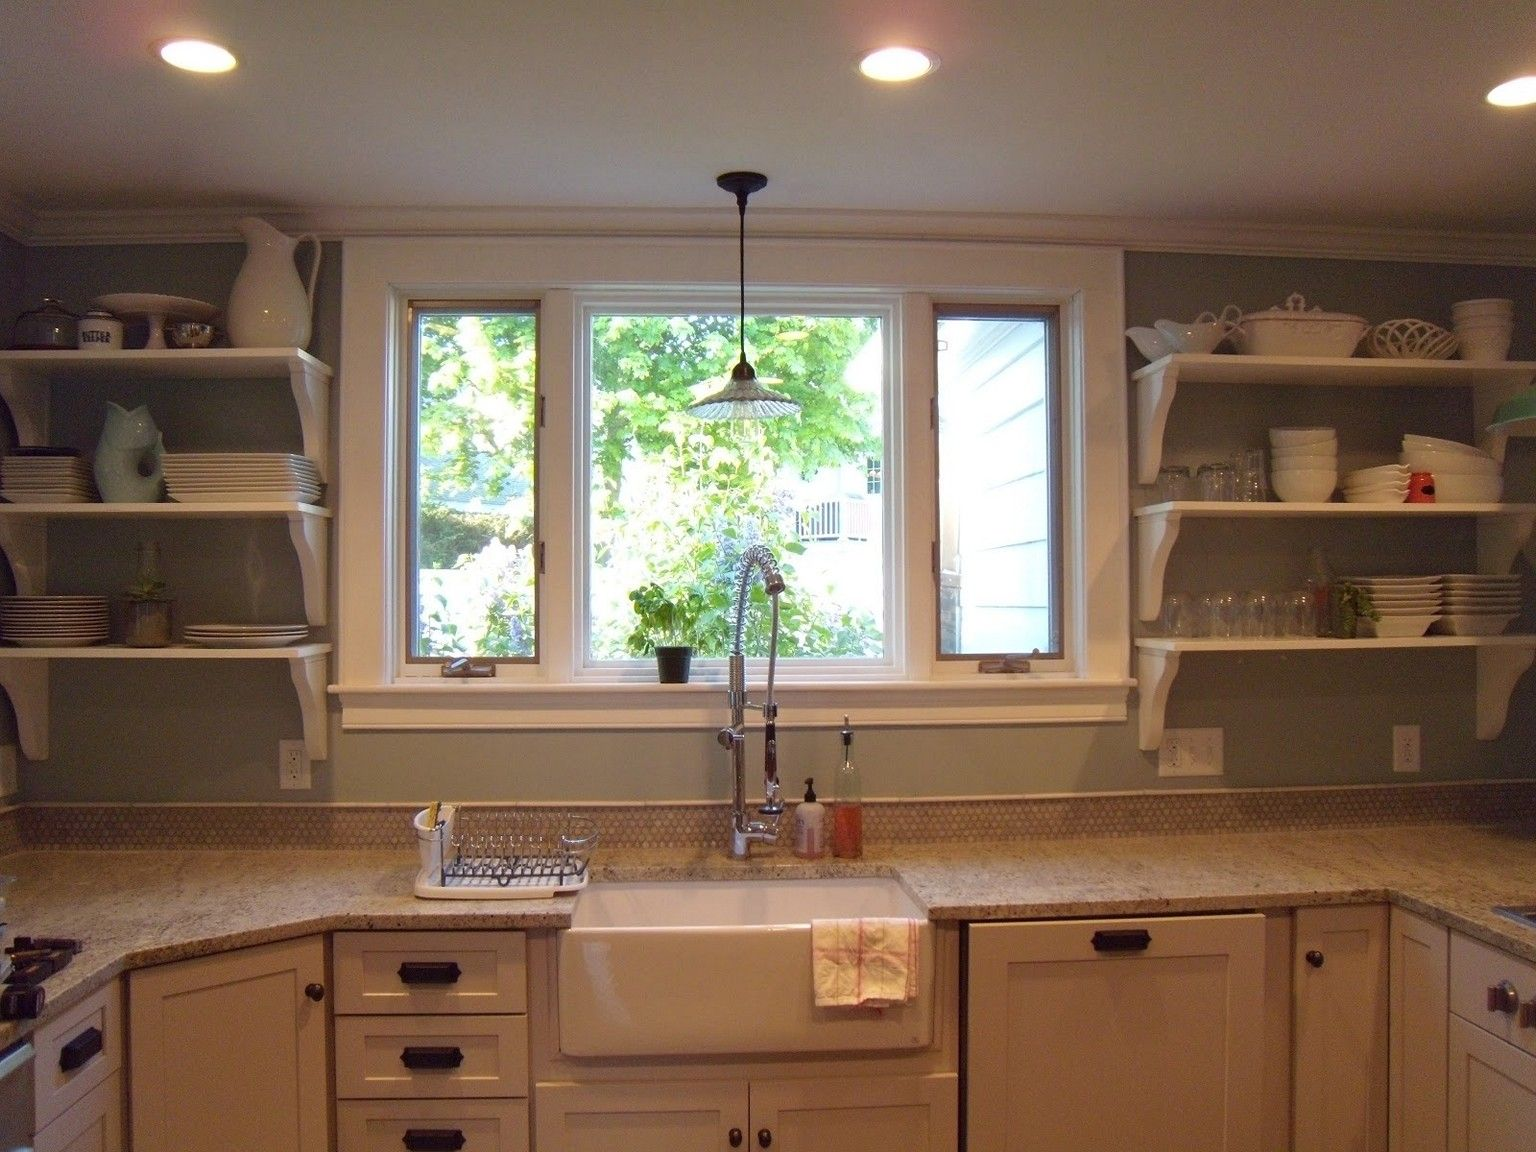 Kitchen Ideas No Window Of Some Kitchen Window Ideas For Your Home Pictures Amp Tips